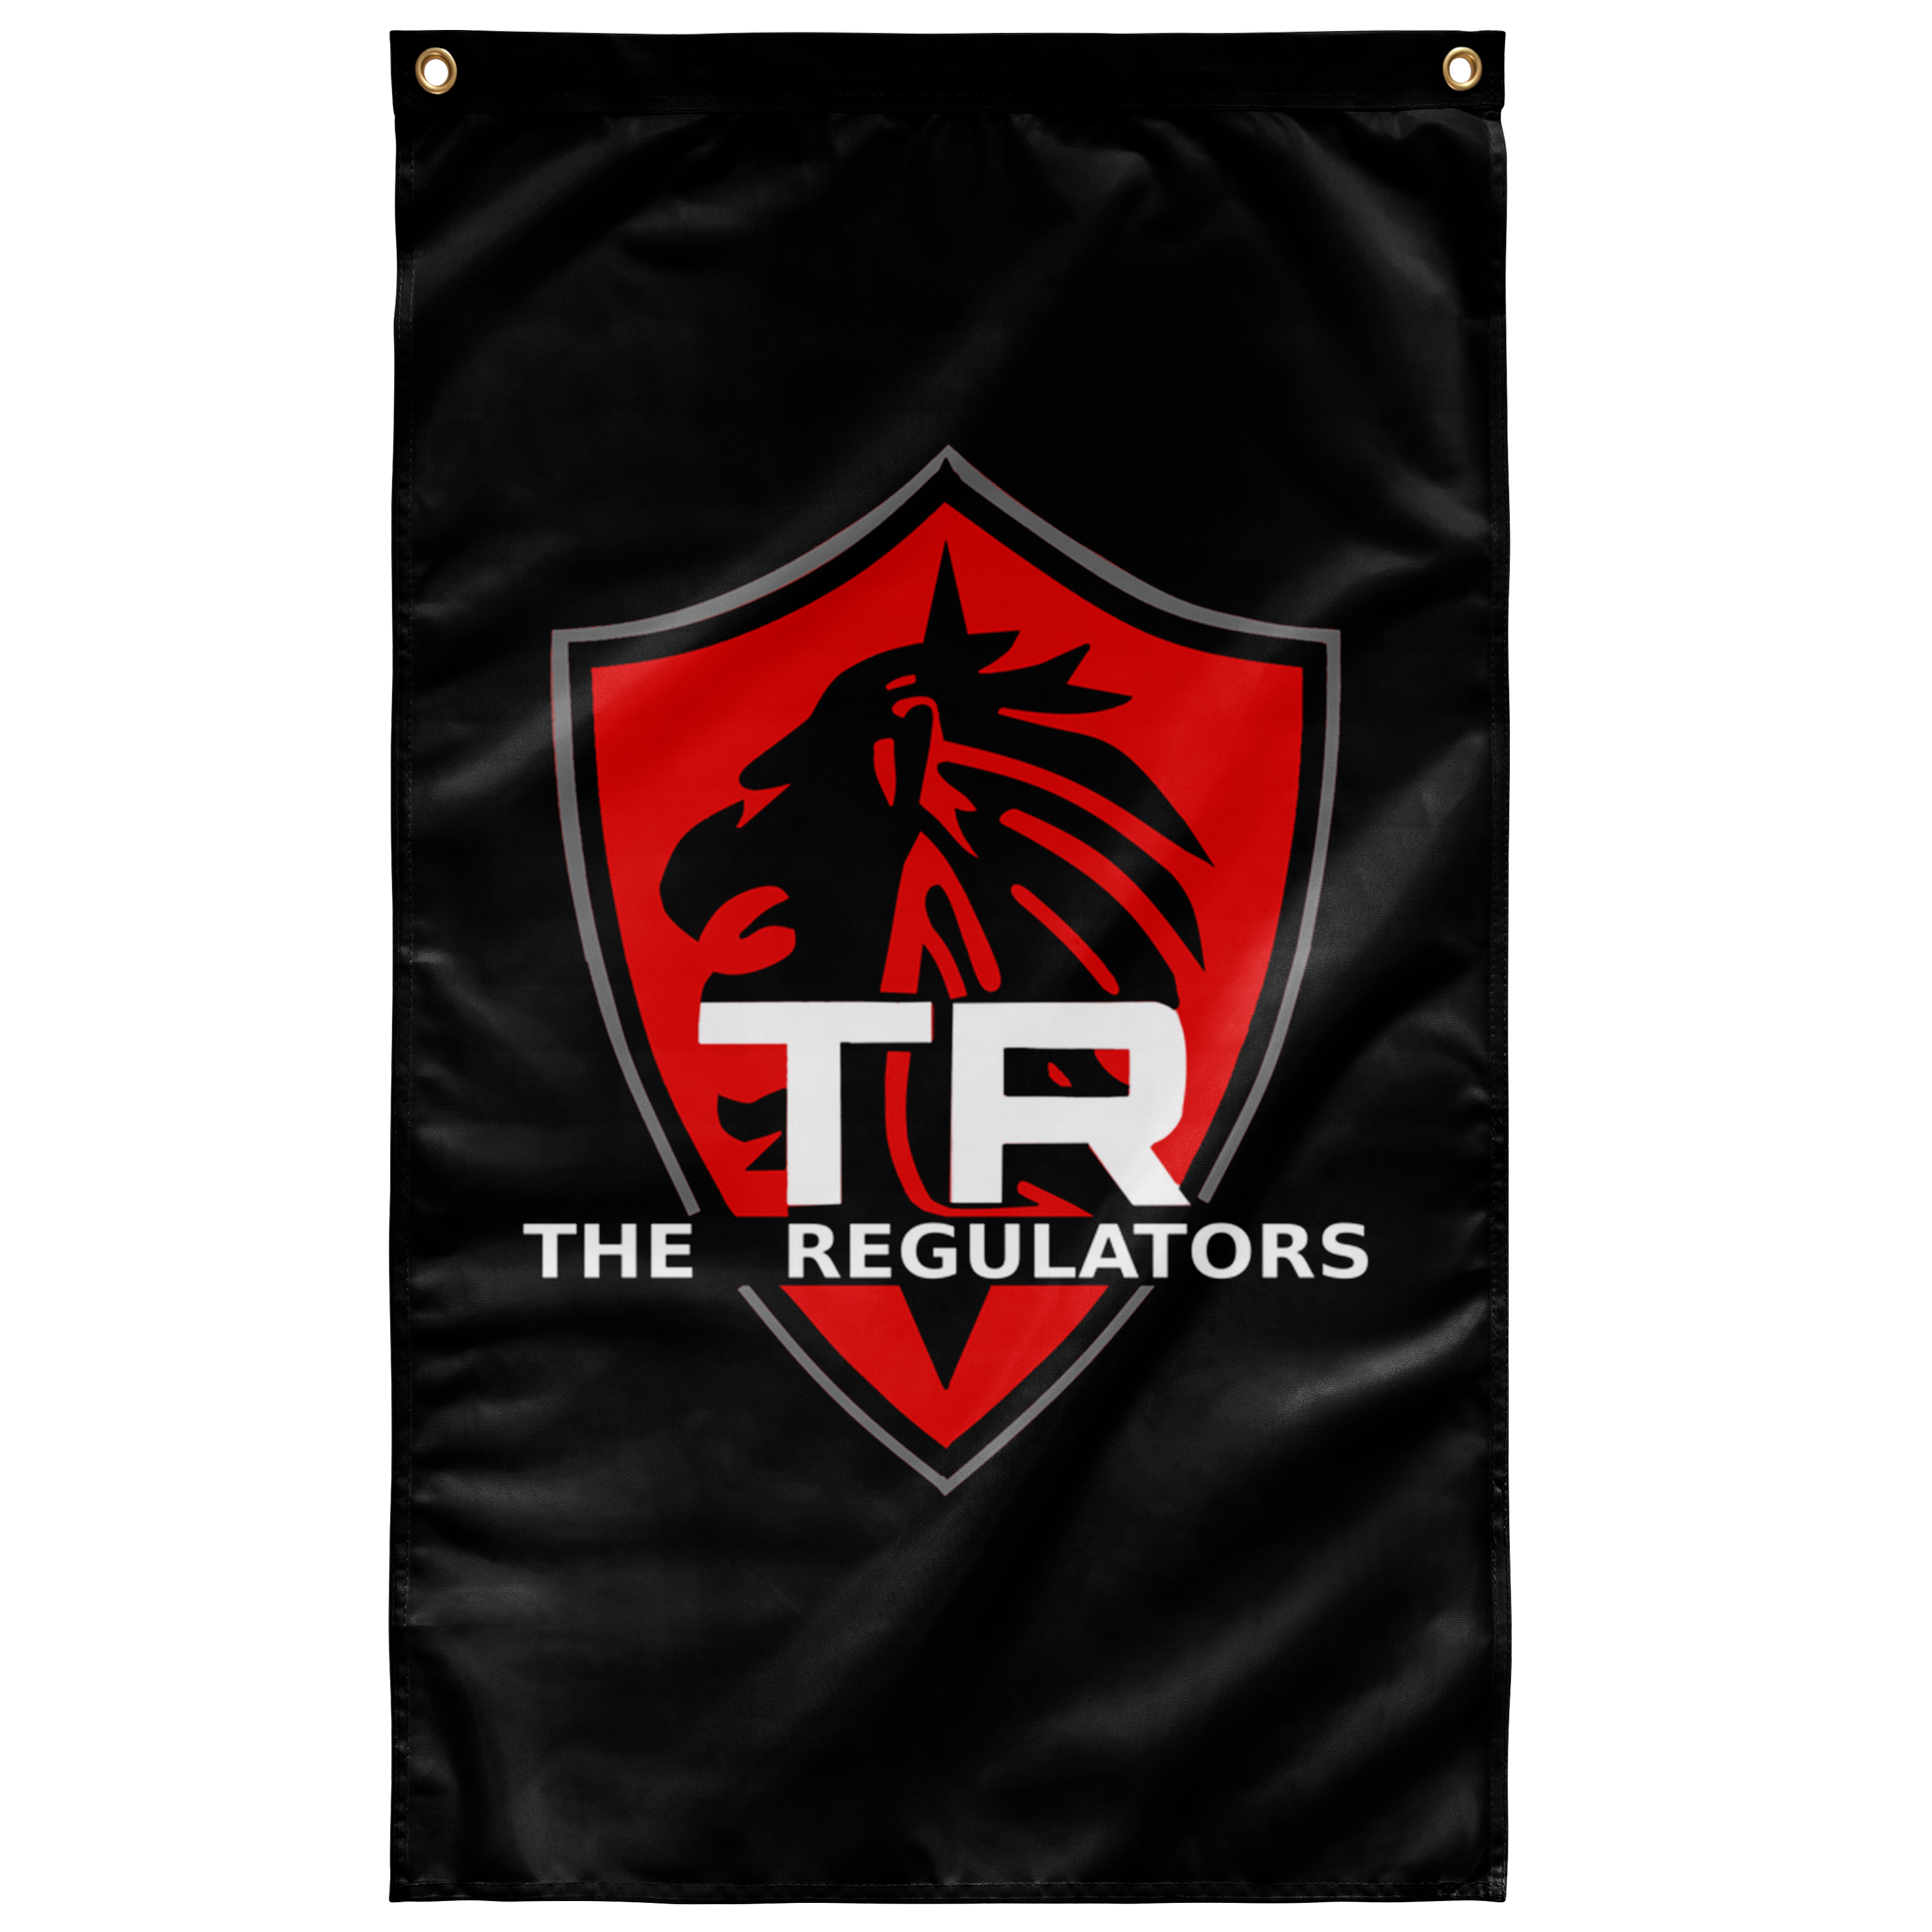 s-tr WALL FLAG VERTICAL